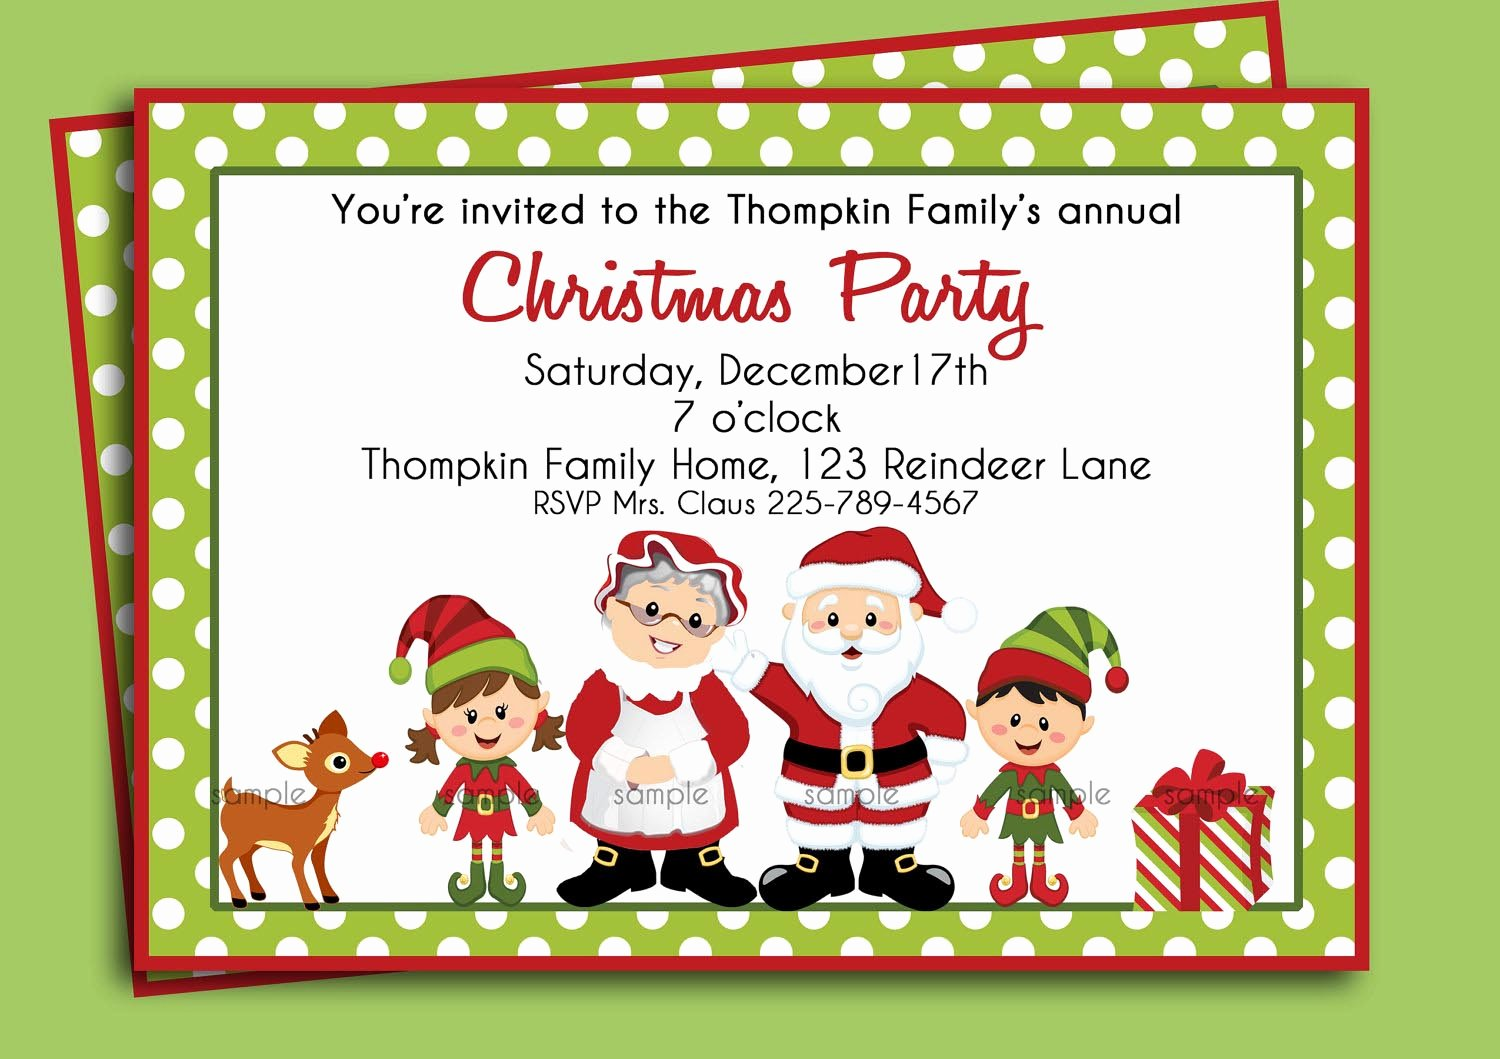 Christmas Party Invitation Template Free Beautiful Christmas Birthday Party Invitations